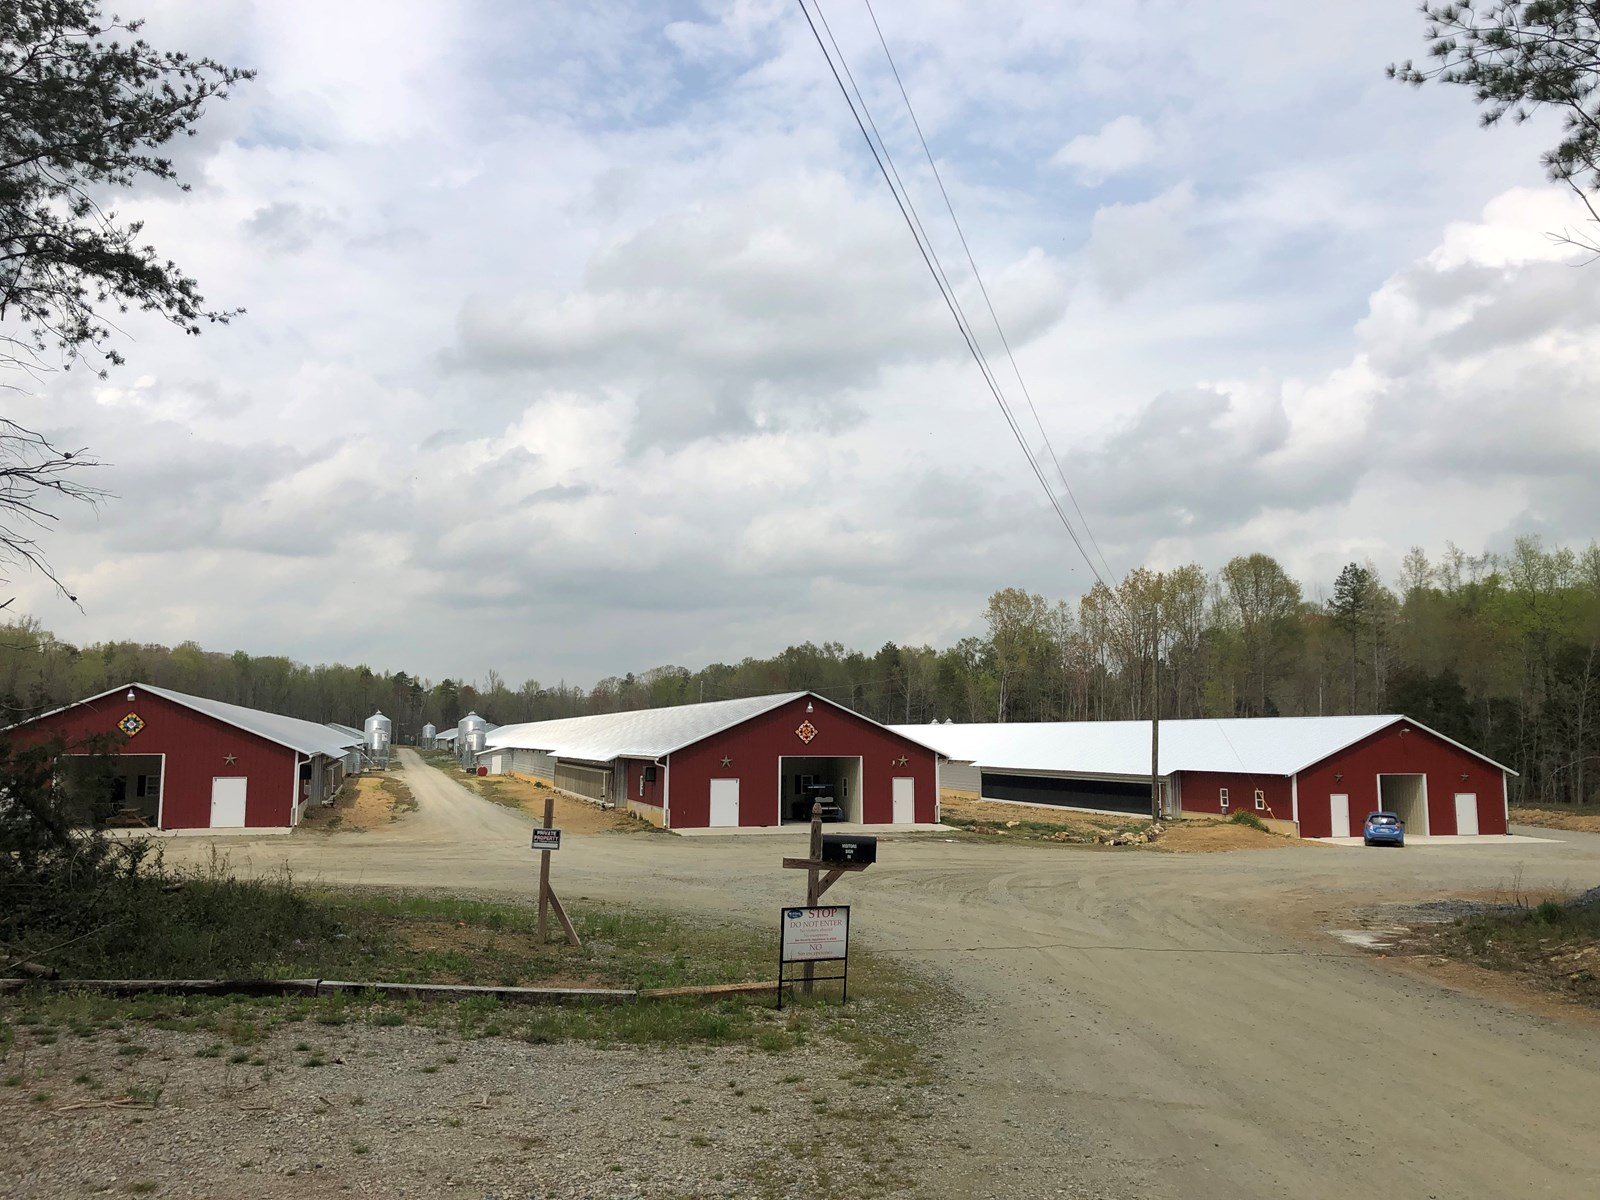 Breeder Poultry Farm, Davidson County, Lexington, NC